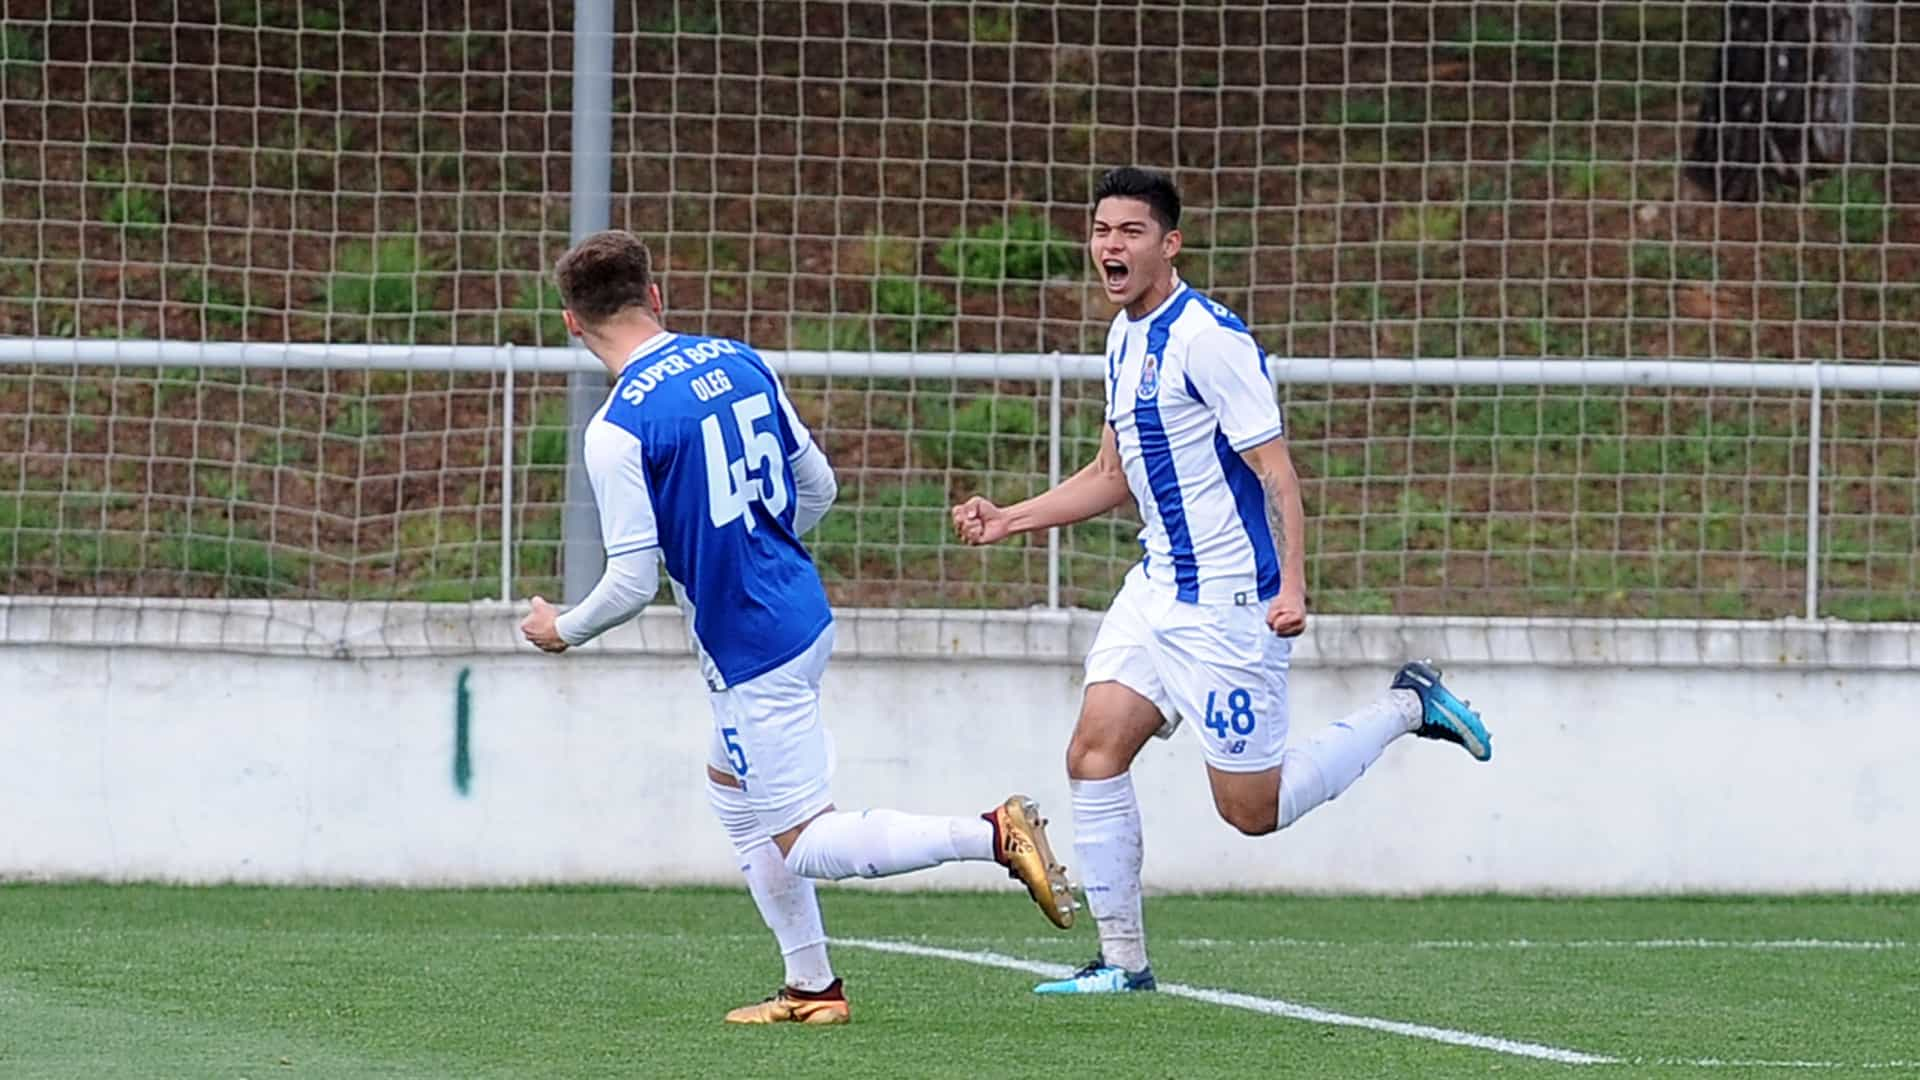 Chelsea é o adversário do FC Porto nas meias-finais da UEFA Youth League